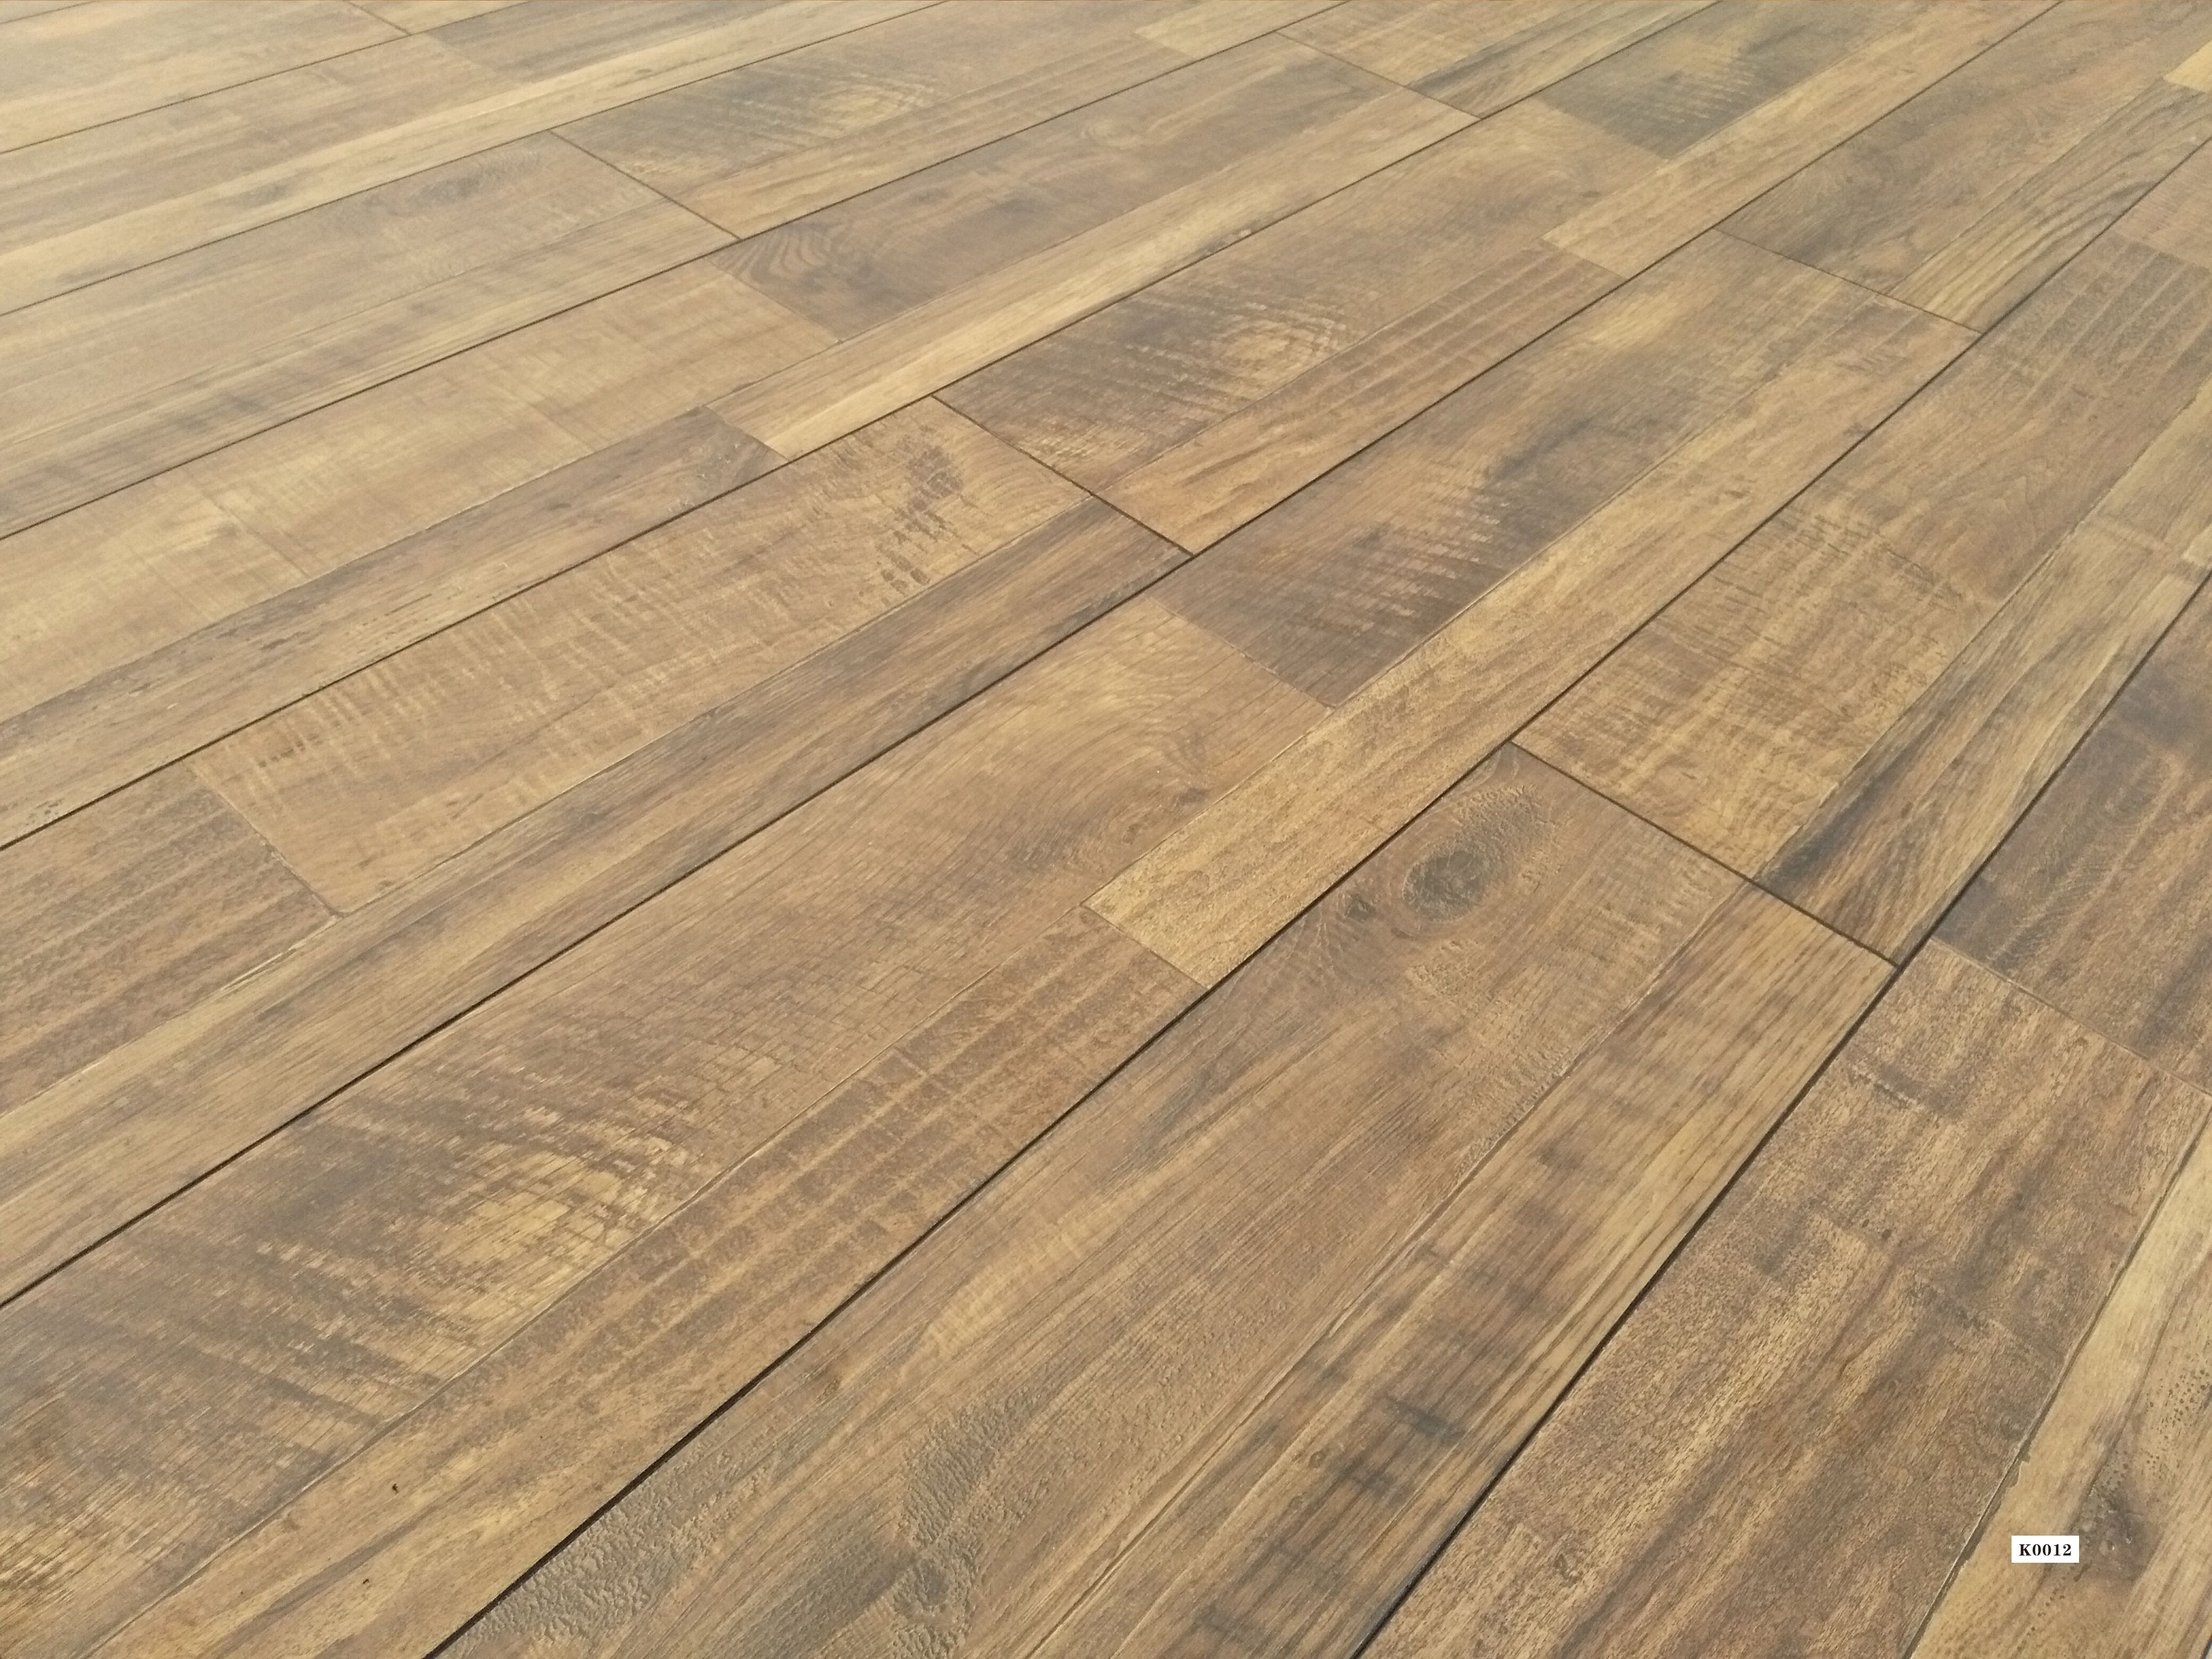 29 Spectacular Bruce solid Oak Hardwood Flooring butterscotch 2021 free download bruce solid oak hardwood flooring butterscotch of lamton 12mm country club collection flooring pinterest cigar intended for 12mm country club collection fine cigar